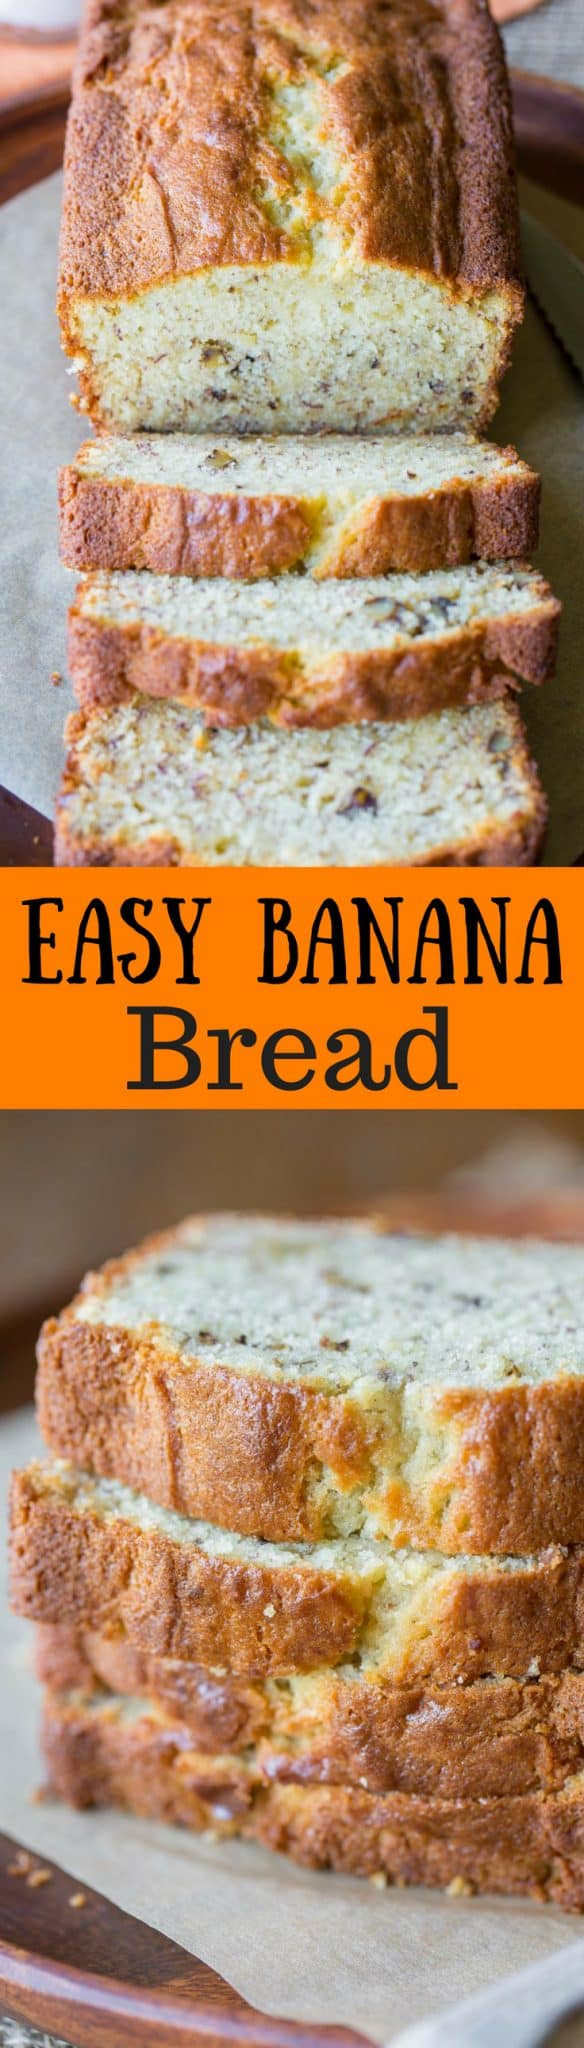 Easy Banana Bread Recipe ~ delicious and simple, and perhaps the best banana bread recipe around!  Moist and tender cake loaded with banana flavor and chopped walnuts.  Try a slice with cinnamon cream cheese - oh my goodness!  www.savingdessert.com